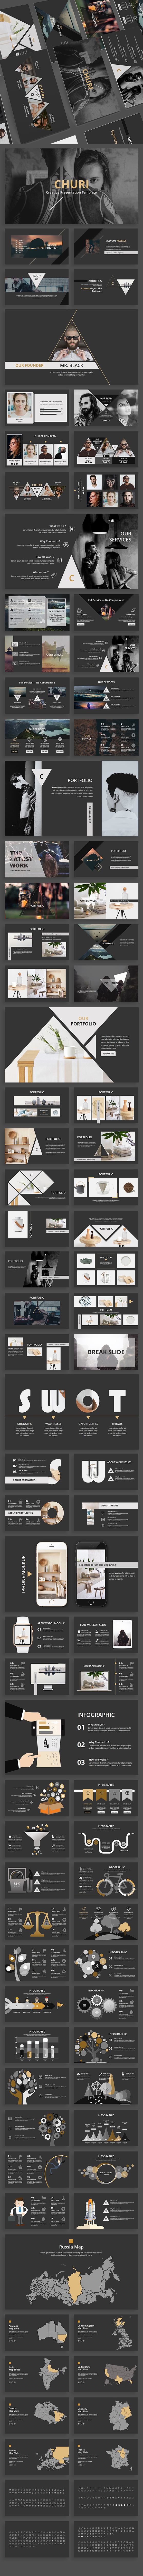 Churi Creative Powerpoint Template - Creative PowerPoint Templates